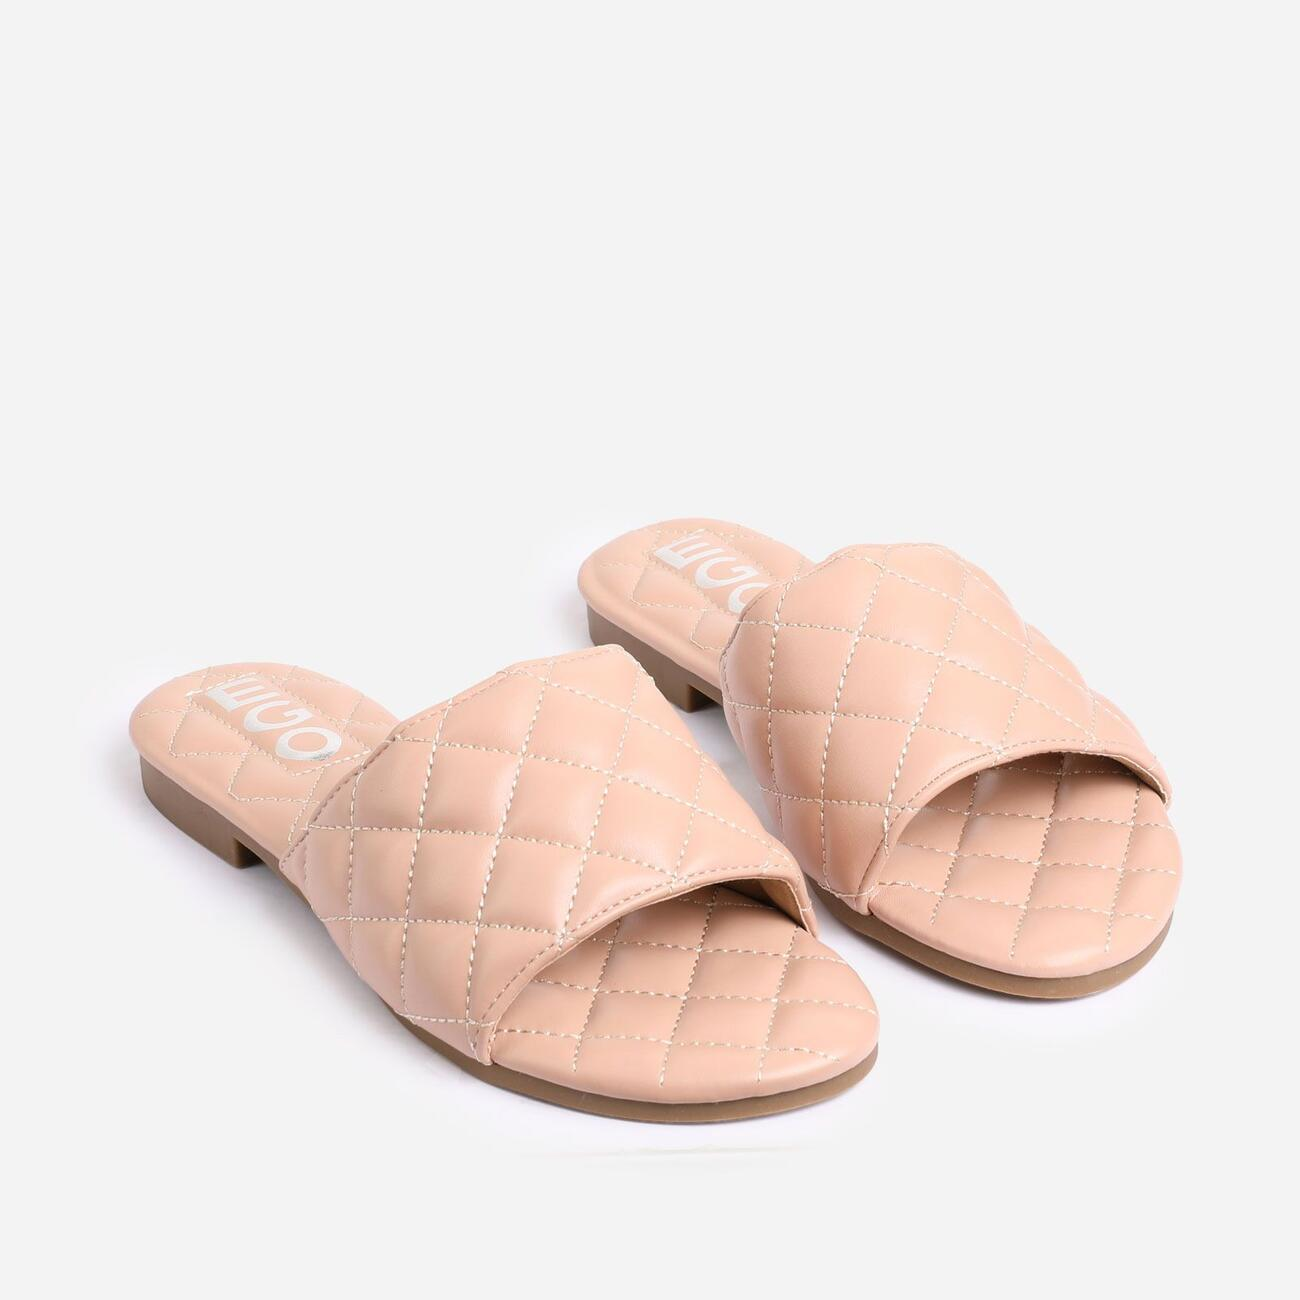 Rider Quilted Flat Slider Sandal In Nude Faux Leather Image 2